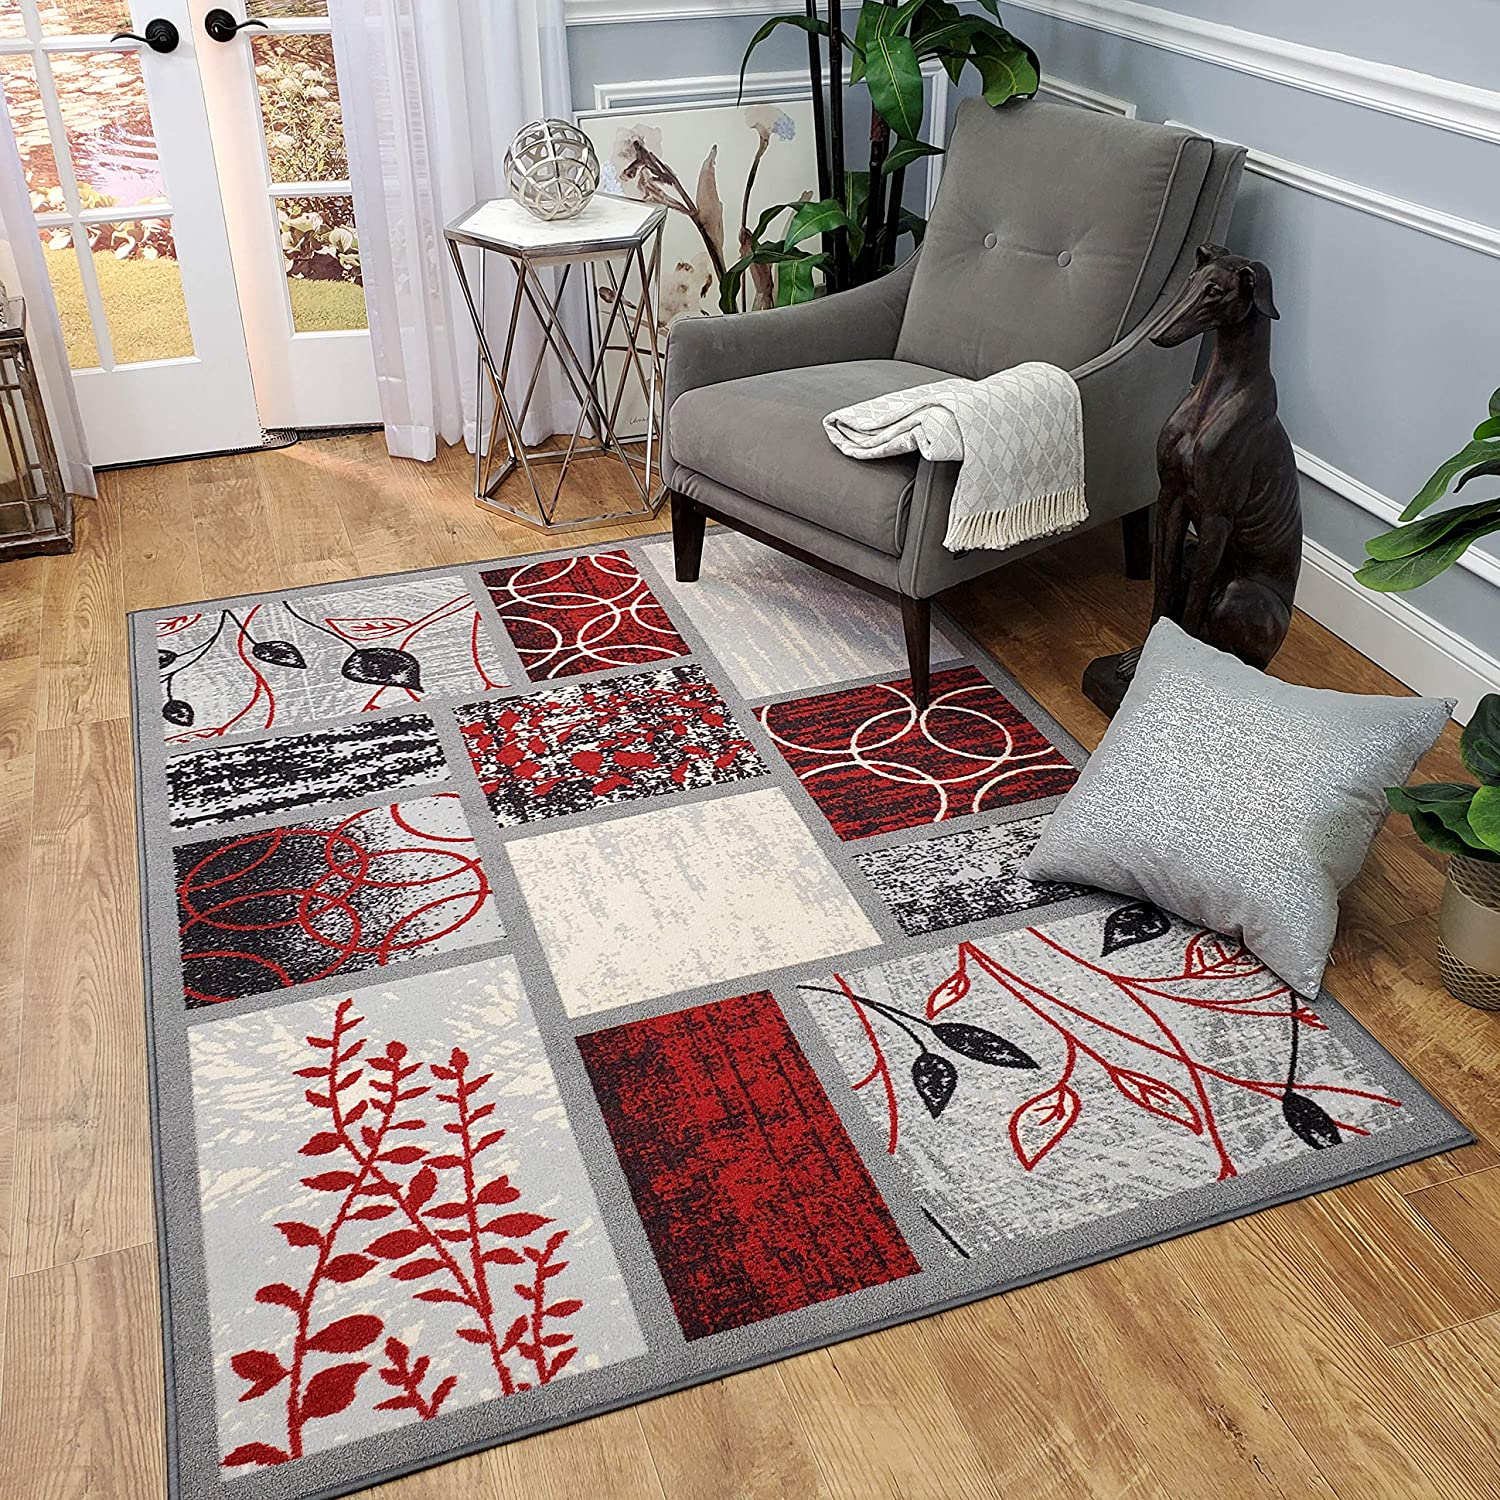 Area Rug 3x5 Red Grey Geometric Rubber Backed Non Slip for Any Room, Kitchen Rugs and Mats, Washable, Made in Europe